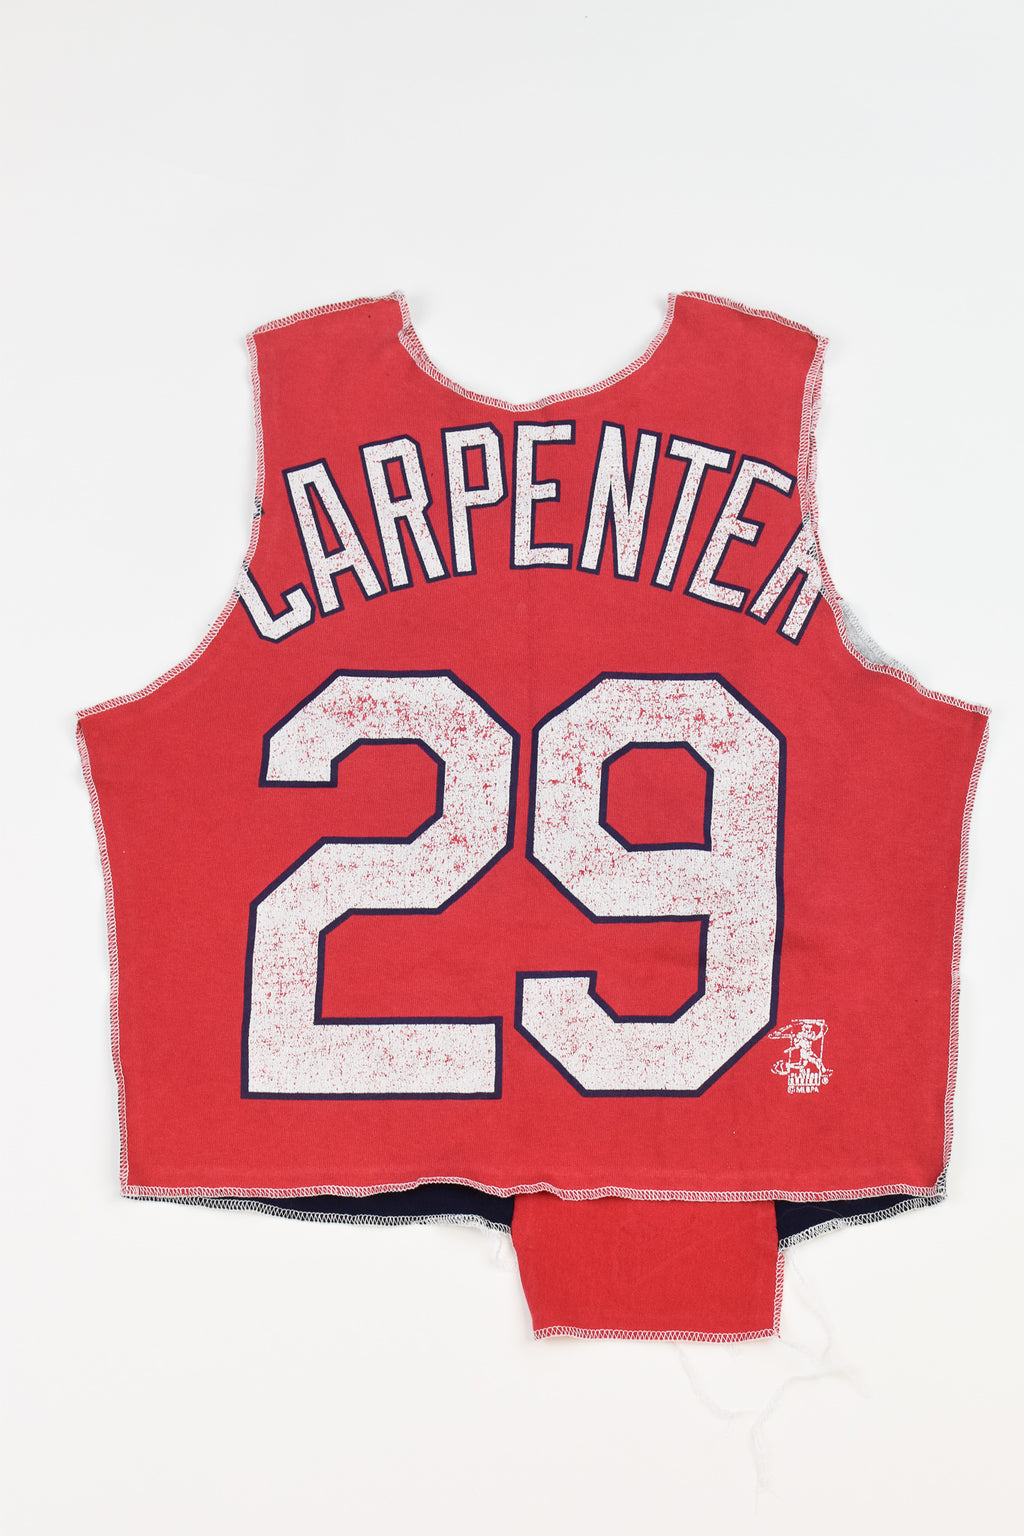 Upcycled Old Dominion University Cropped Rhinestone Chain Shirt